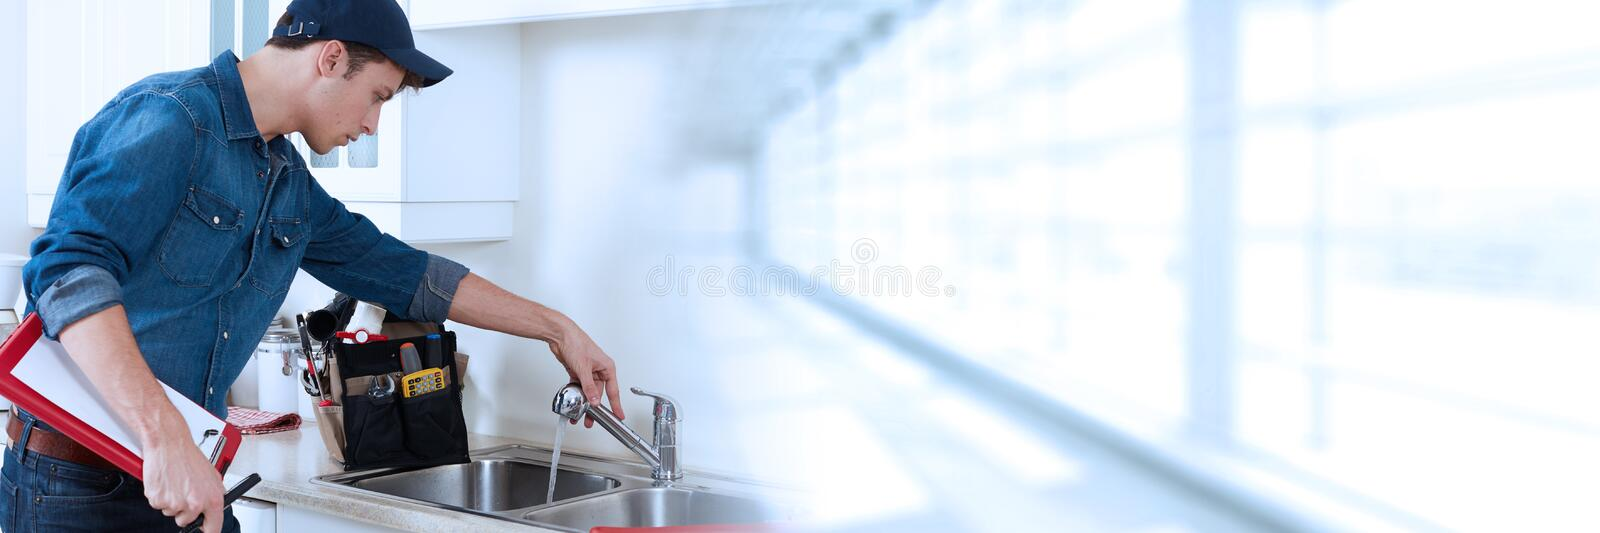 Plumber. Professional plumber working renovation in kitchen home royalty free stock photography